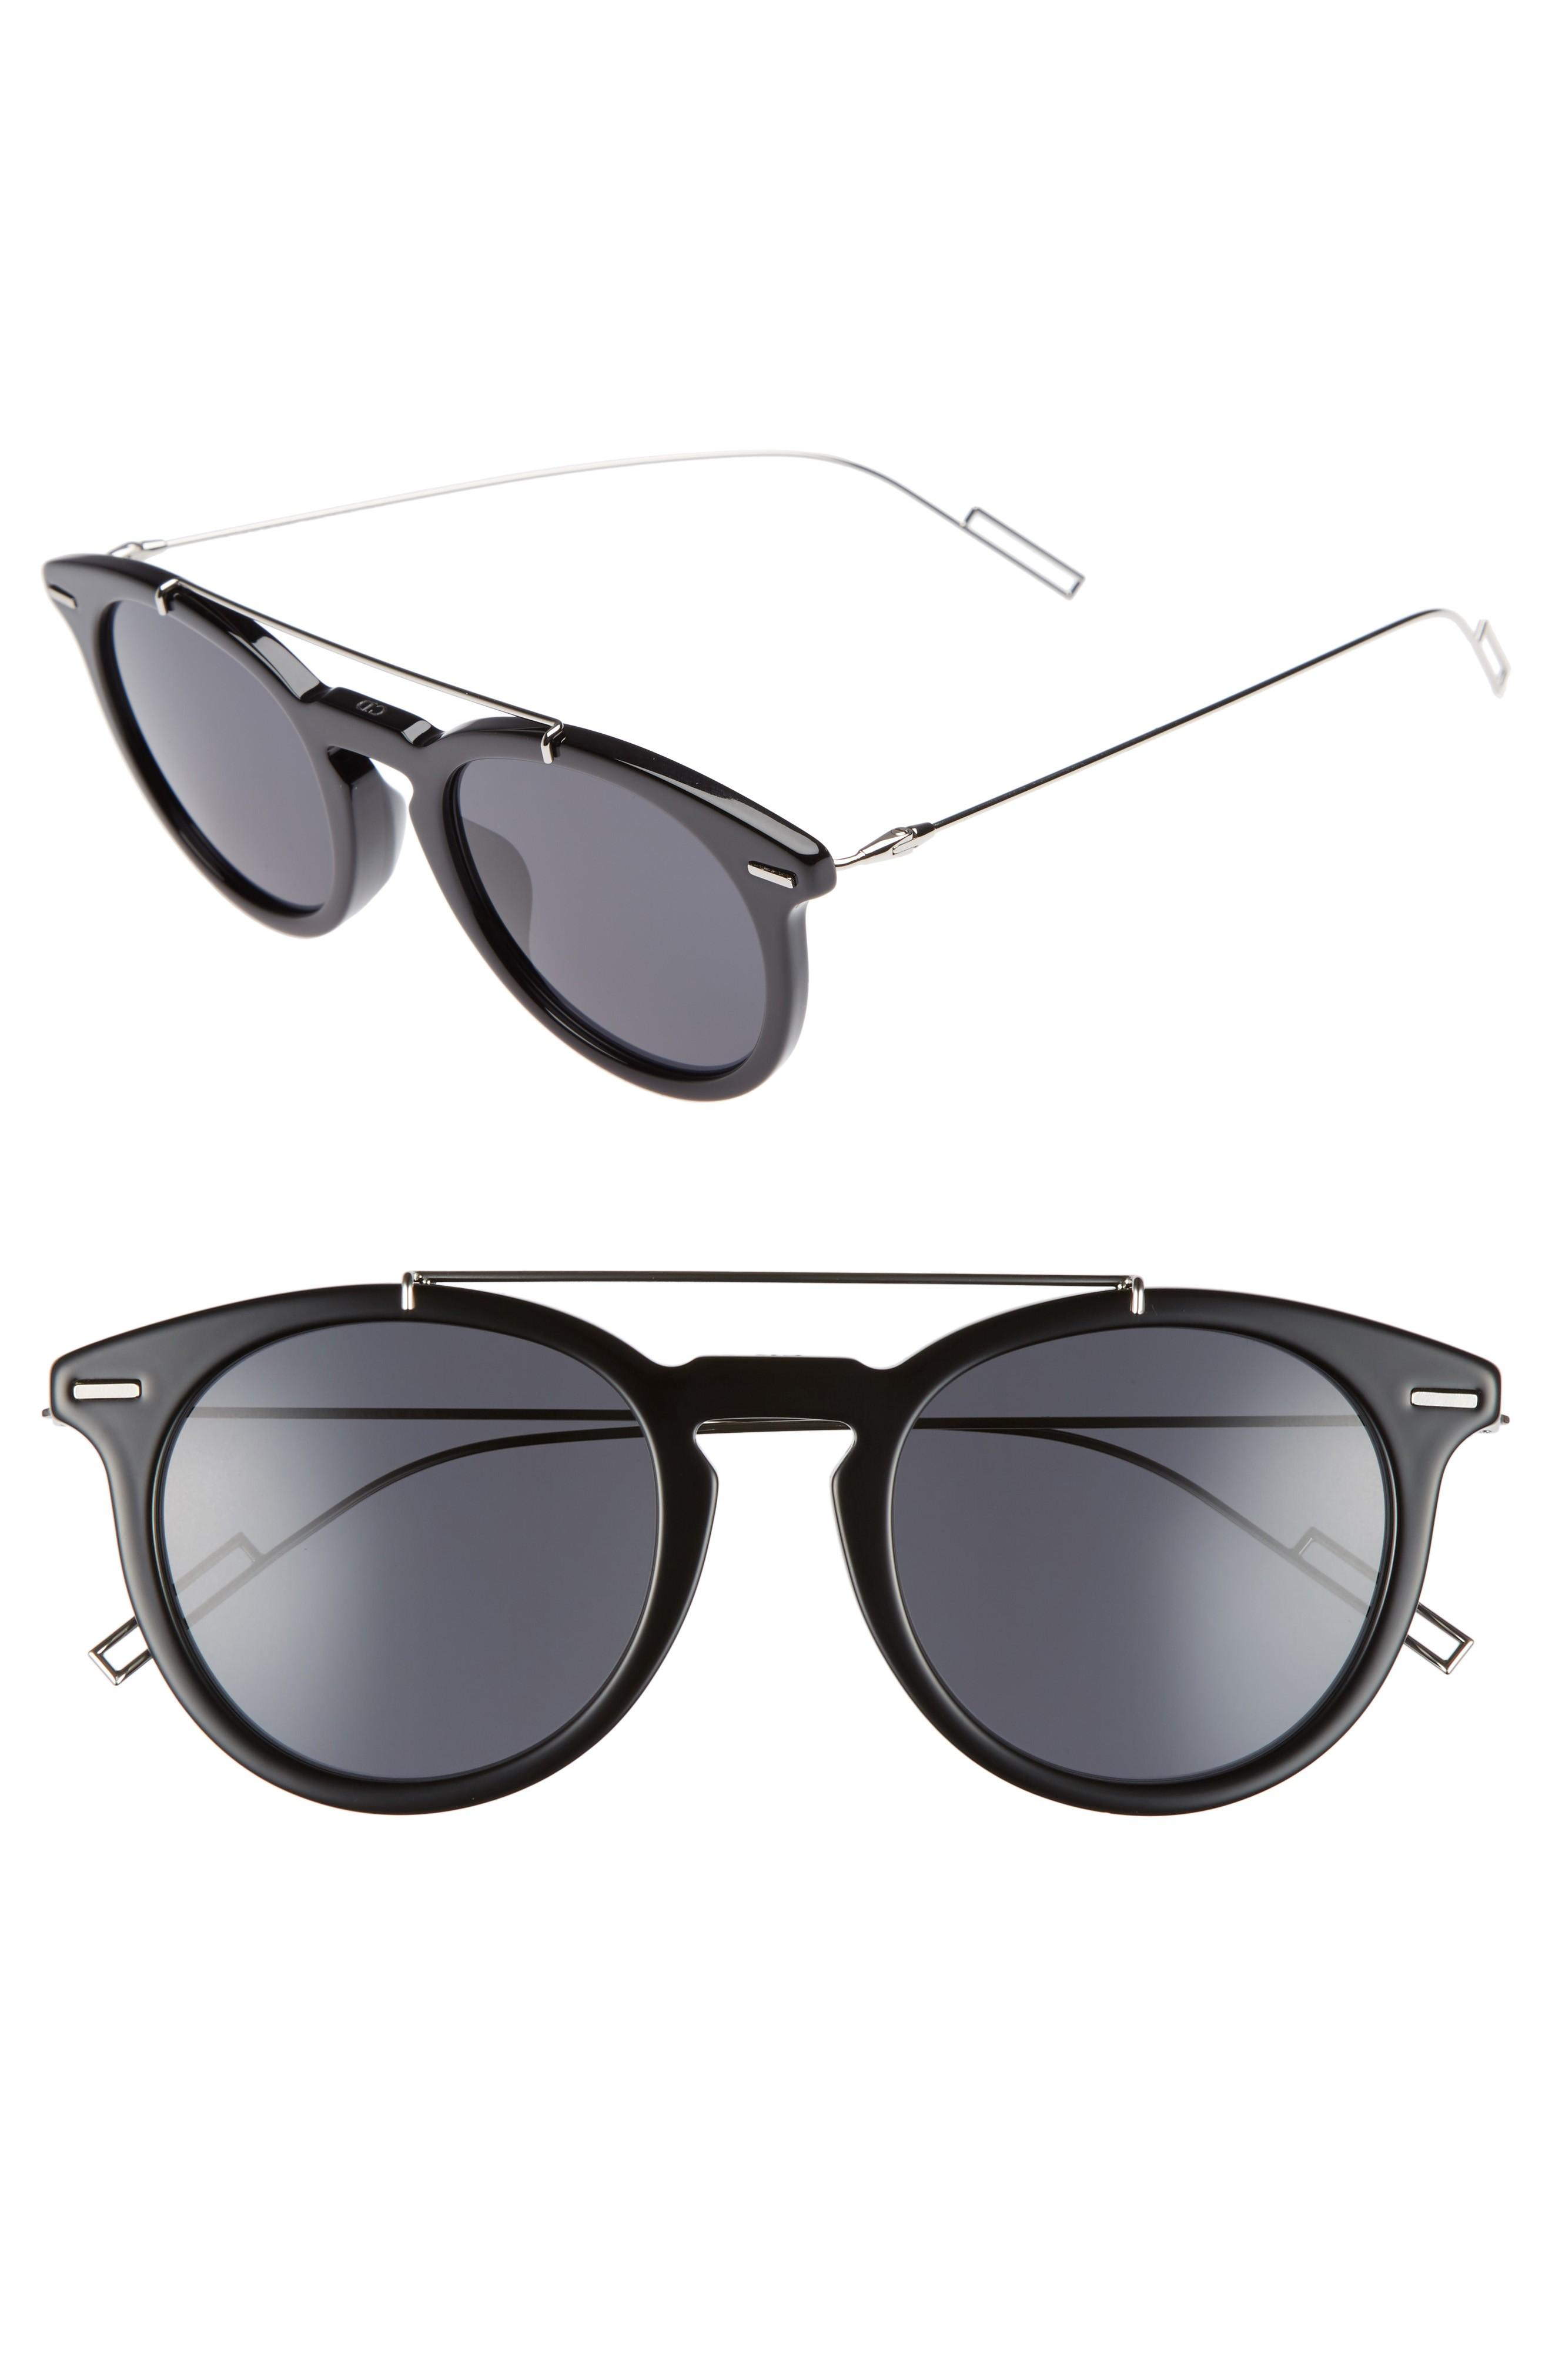 75d9dd6c7d98 Dior Homme Master 51Mm Sunglasses - Black